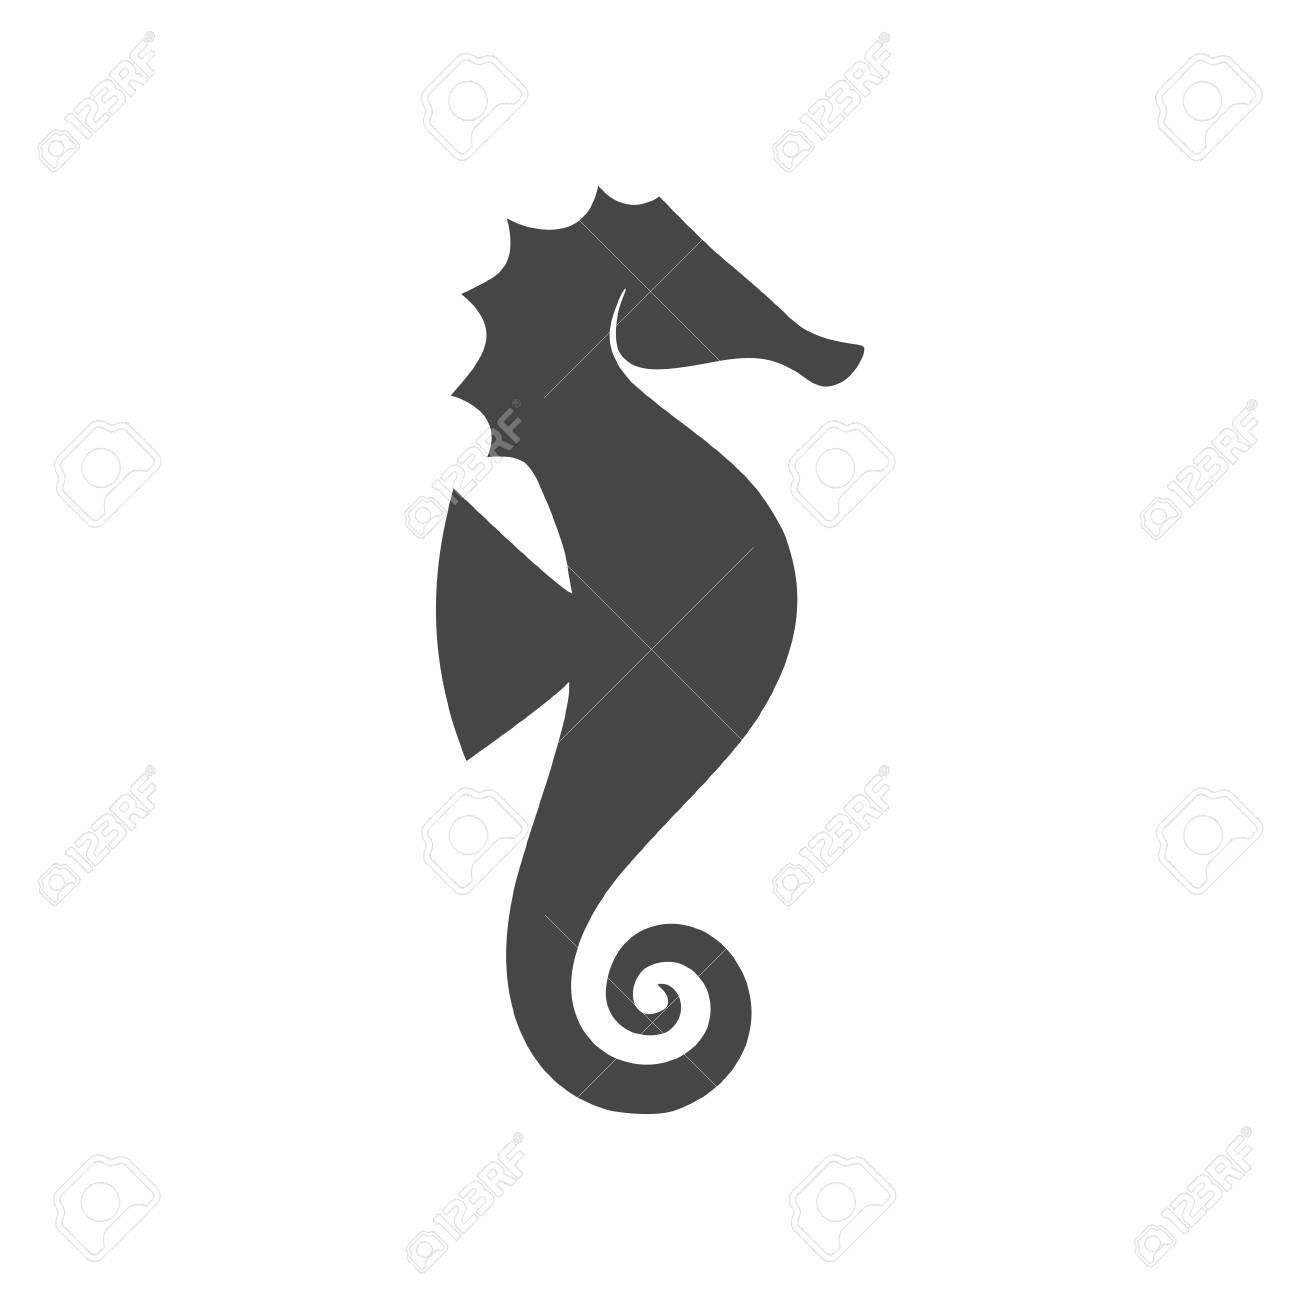 Sea Horse Vector Illustration Royalty Free Cliparts Vectors And Stock Illustration Image 90823943